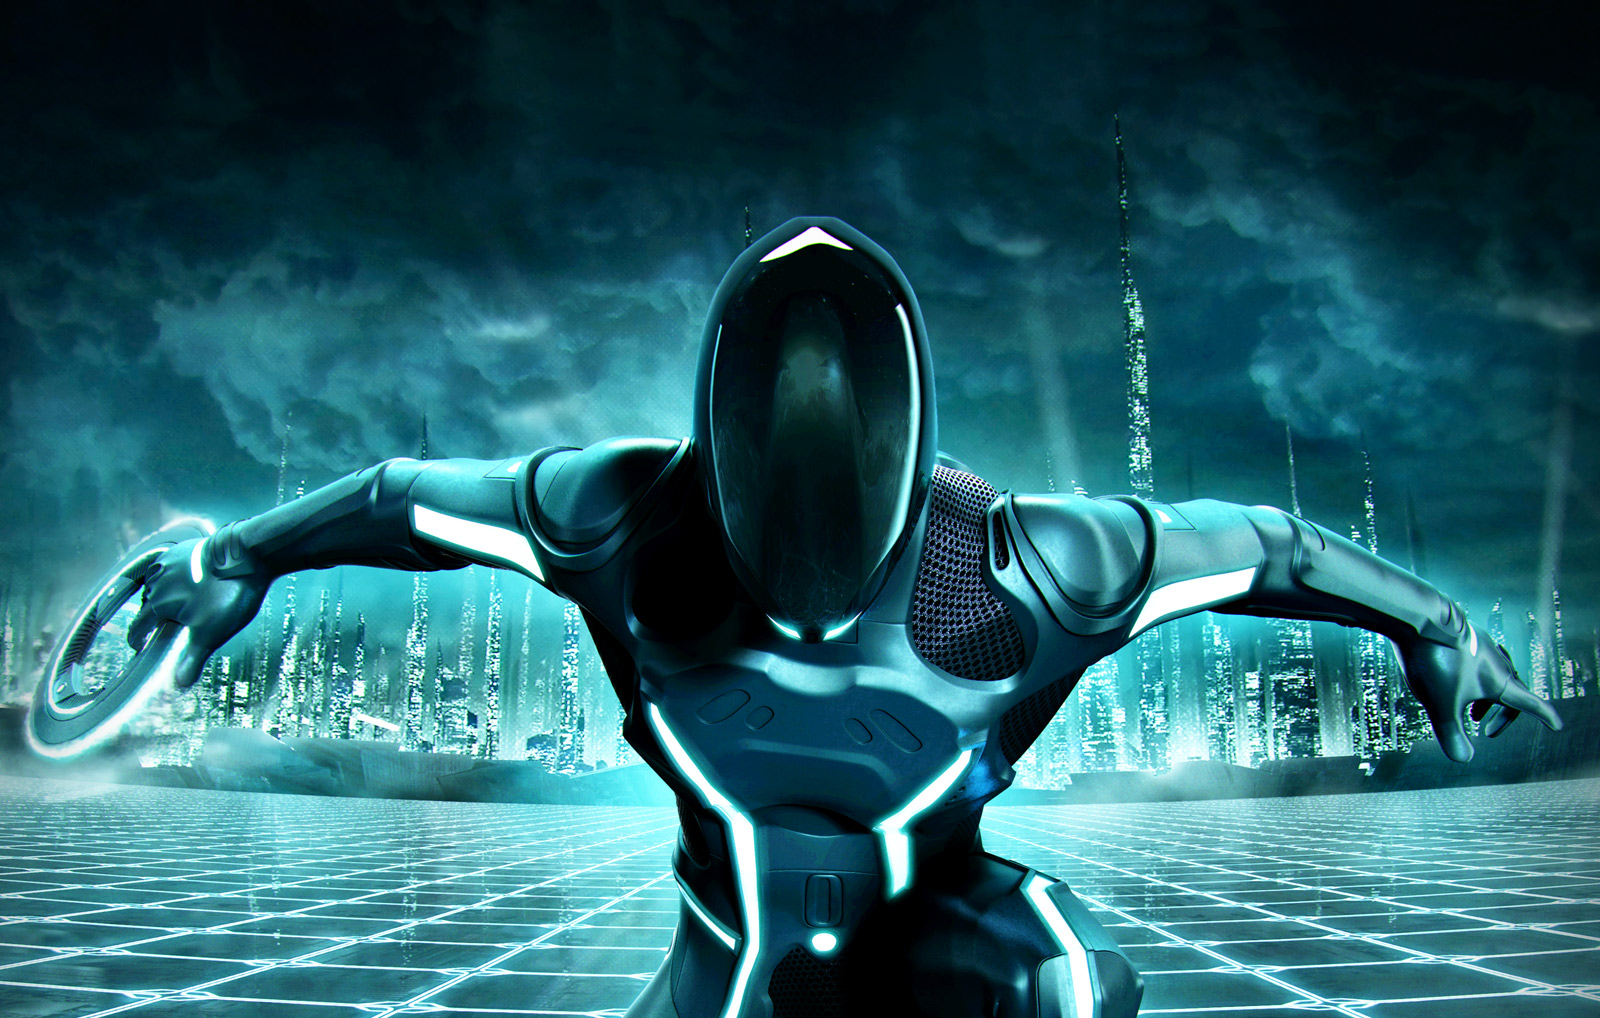 Tron_Full_compose_CG.jpg